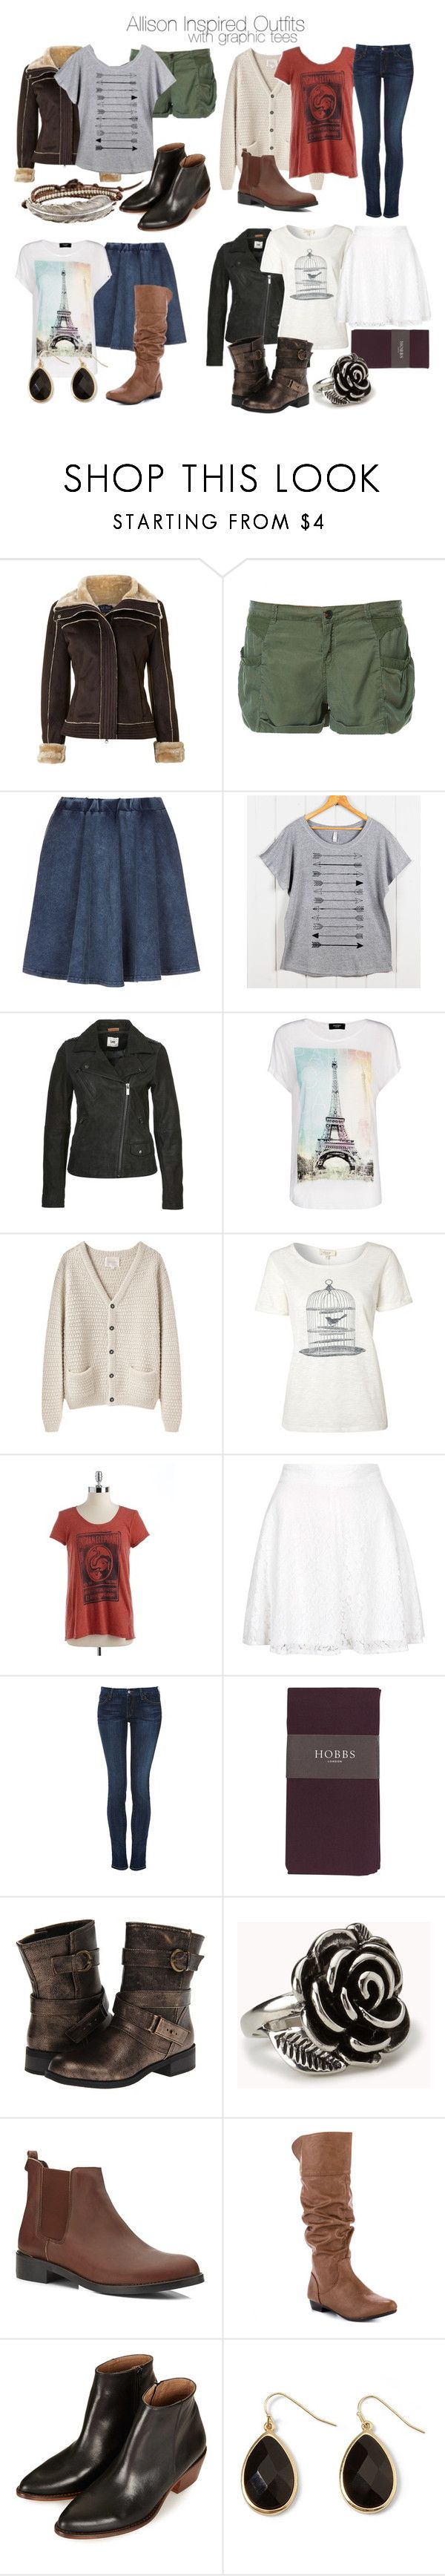 """Allison Inspired Outfits with Graphic Tees"" by veterization ❤ liked on Polyvore featuring Armani Jeans, Zara, Feather 4 Arrow, Lee, MANGO, La Garçonne Moderne, Linea Weekend, Lucky Brand, Topshop and Koral"